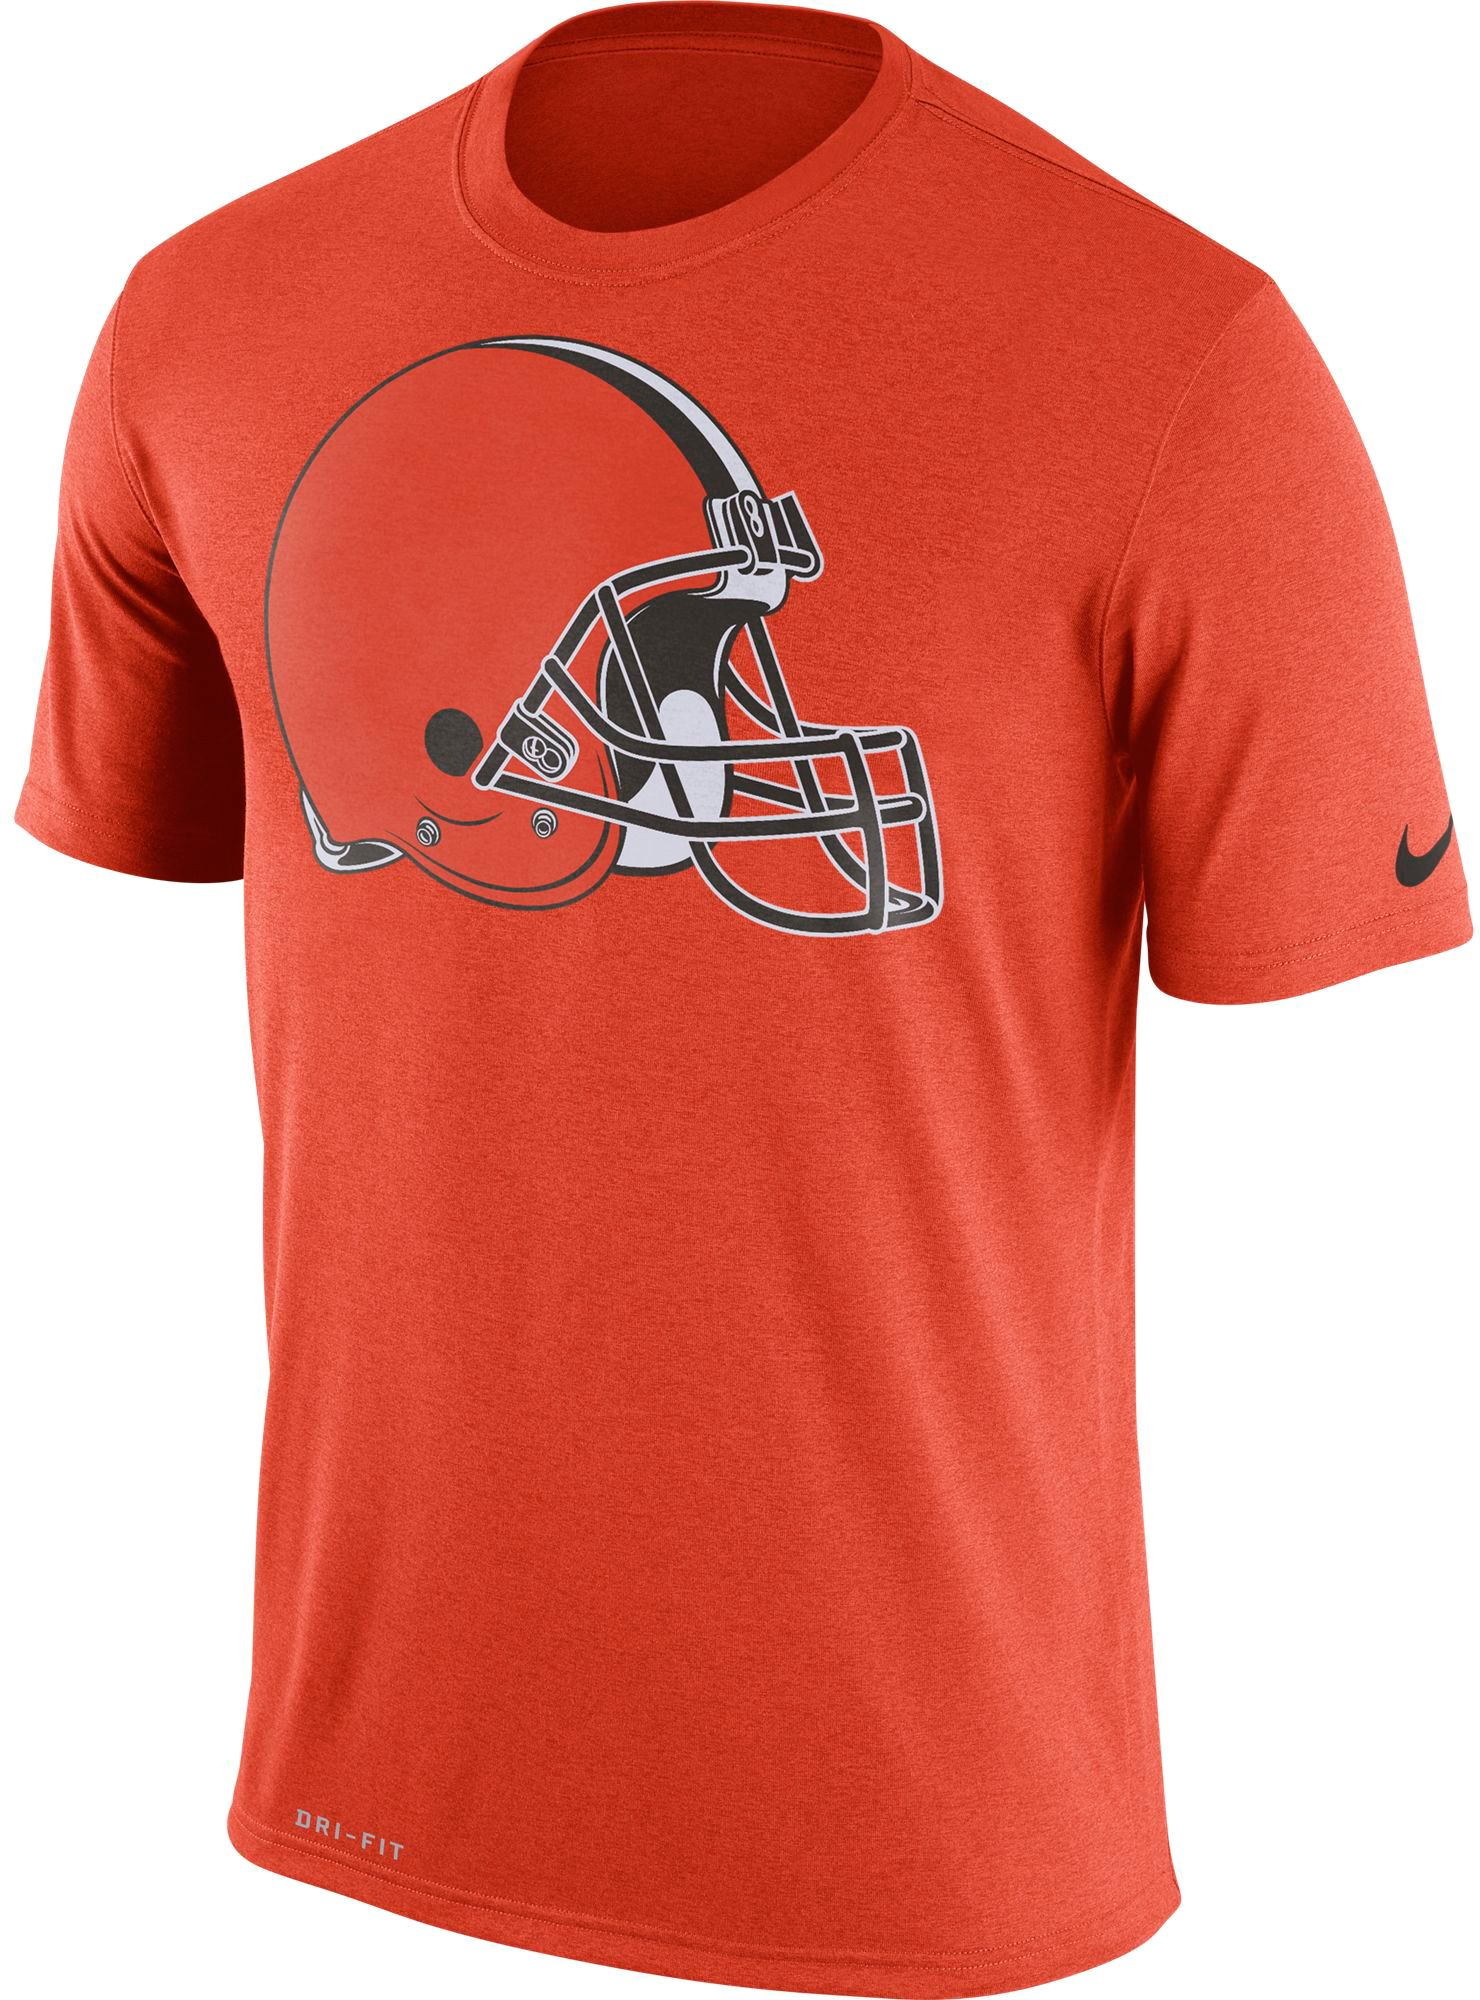 9df87f0ae denmark signed jim brown painted jersey 29e57 7029f  order nike mens cleveland  browns legend logo performance orange t shirt 0f459 32268